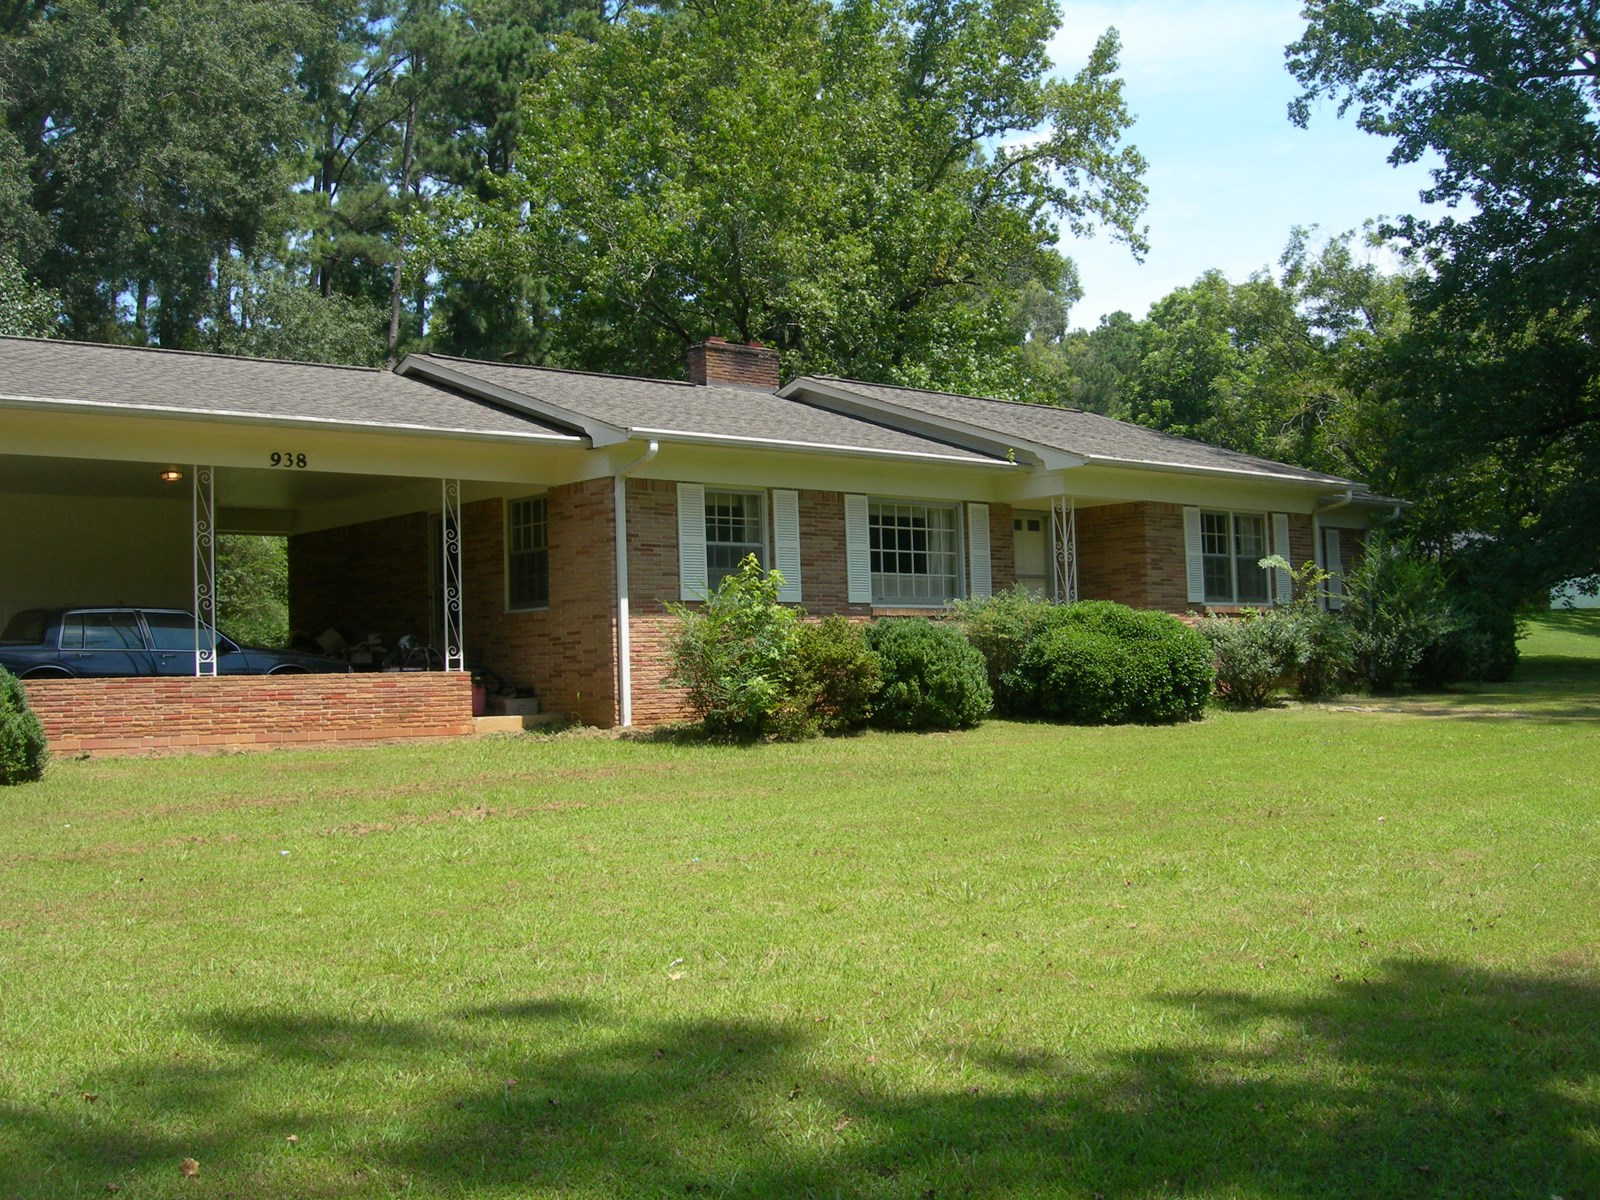 3 BEDROOM HOME FOR SALE IN SELMER TN